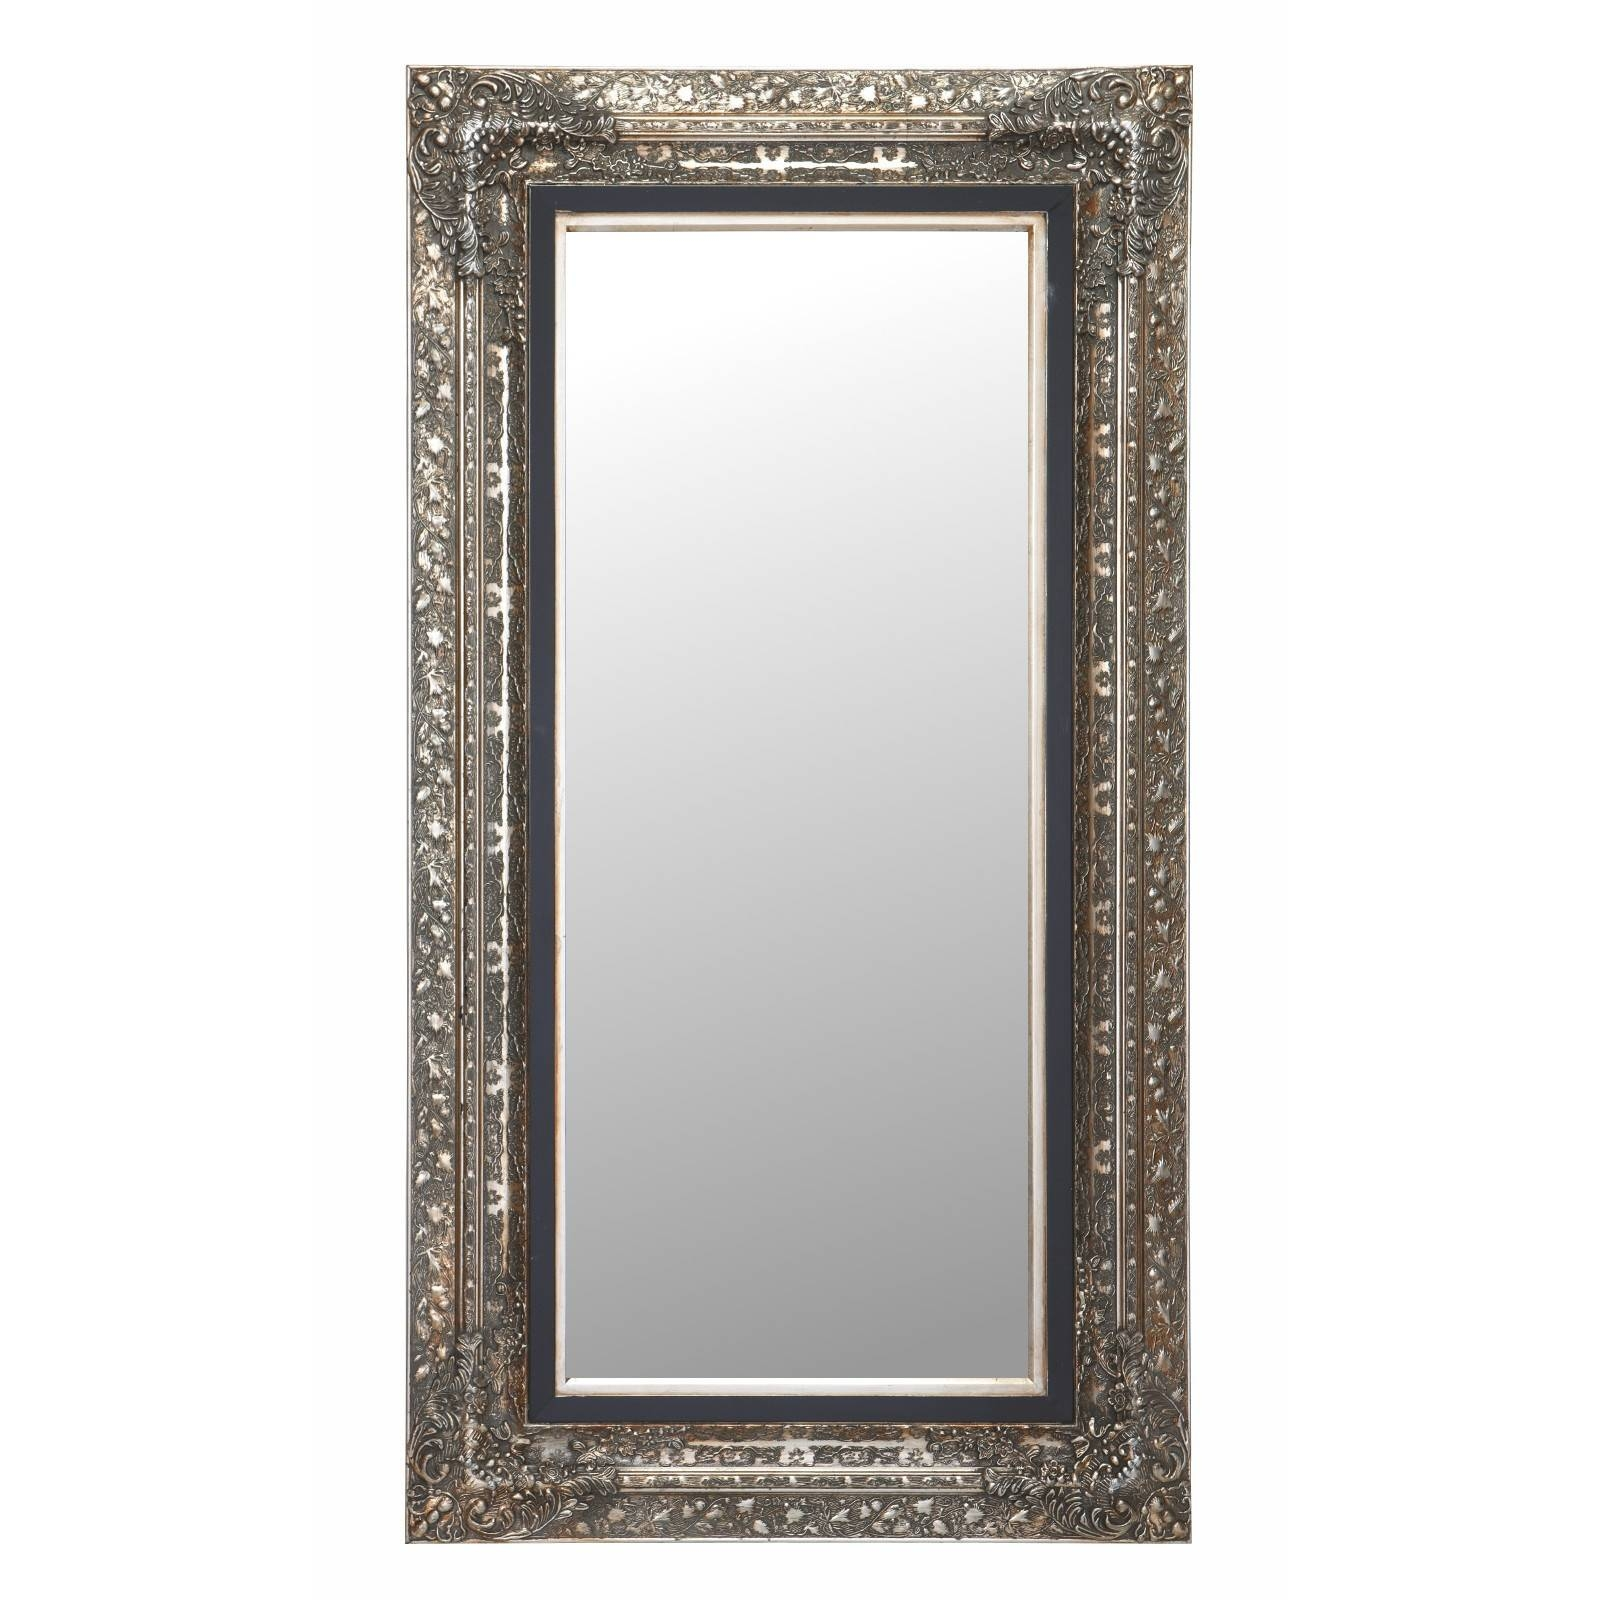 "Large Baroque Mirror ""laura"" Facet Cut Silver 39.7"" X 75.2"" 